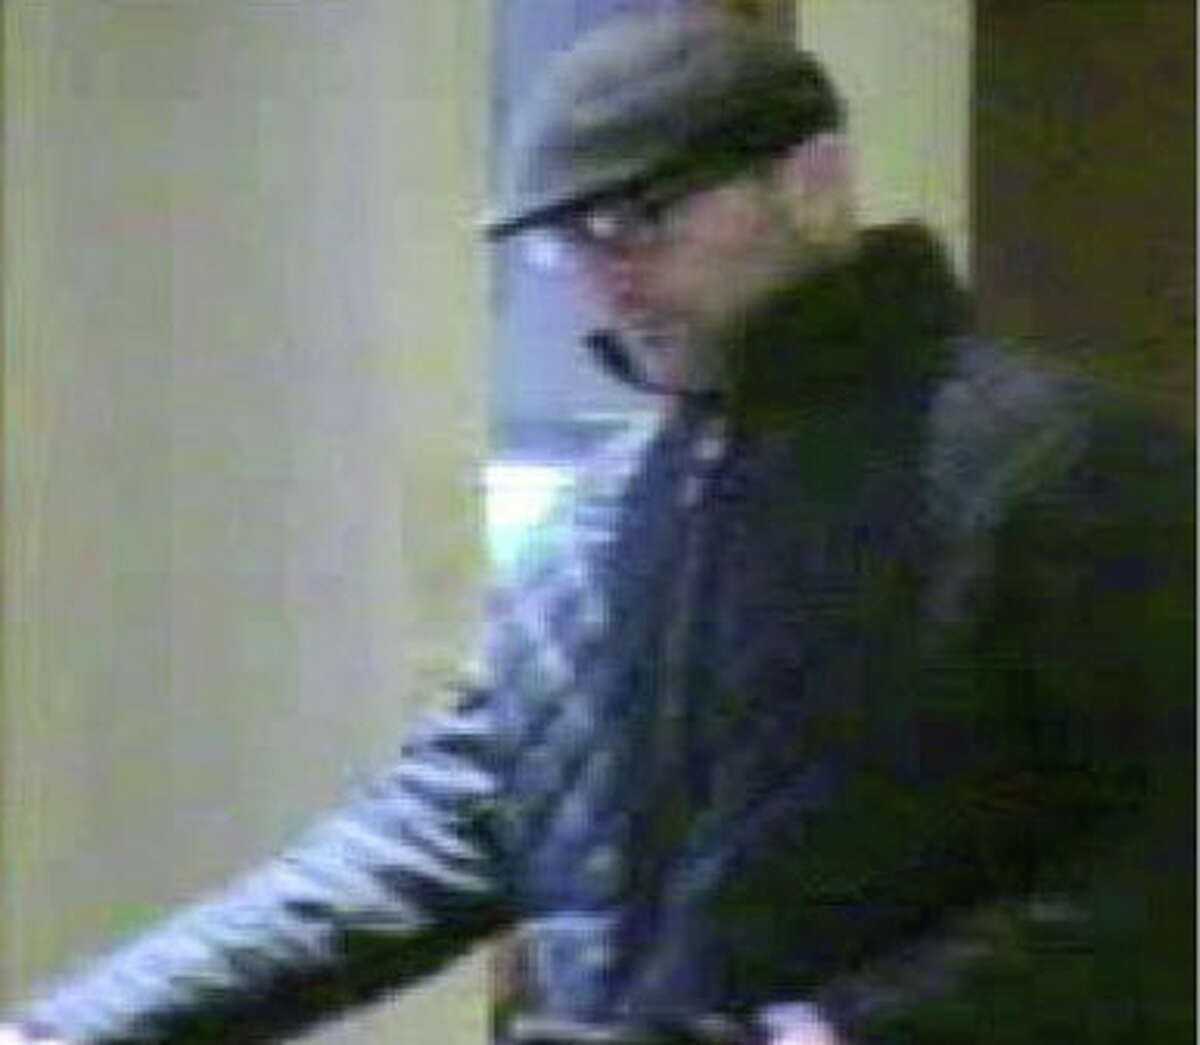 """Surveillance image of the suspect in the killing of Westport jeweler Yekutiel Zeevi on Dec 8, 2011. Federal authorities have charged Andrew Robert Levene, also known as """"Robert Thomas"""", 41, was arrested in Spain on federal murder, robbery and firearm charges in connection with the killing of Yekutiel Zeevi, a Westport jewelry manufacturer inside his store last month."""